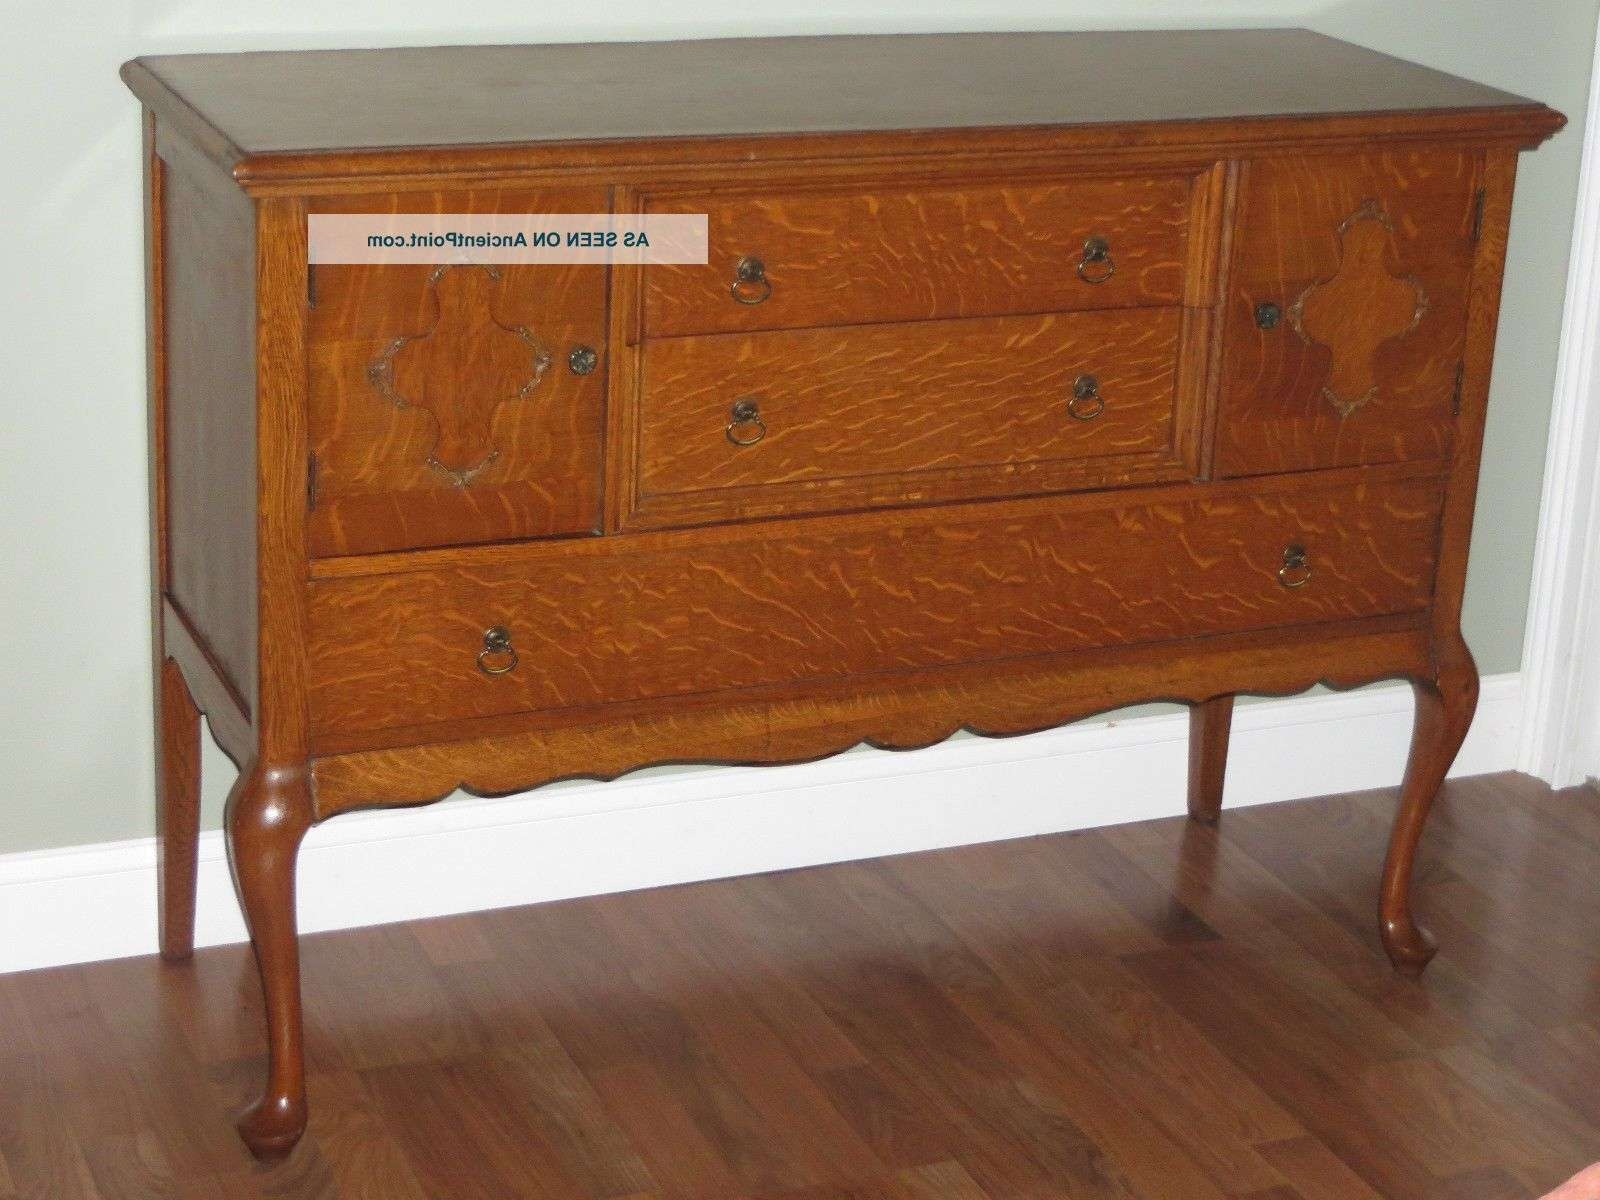 Best Of Buffet Sideboard Server – Bjdgjy With Sideboards Buffet Servers (View 16 of 20)